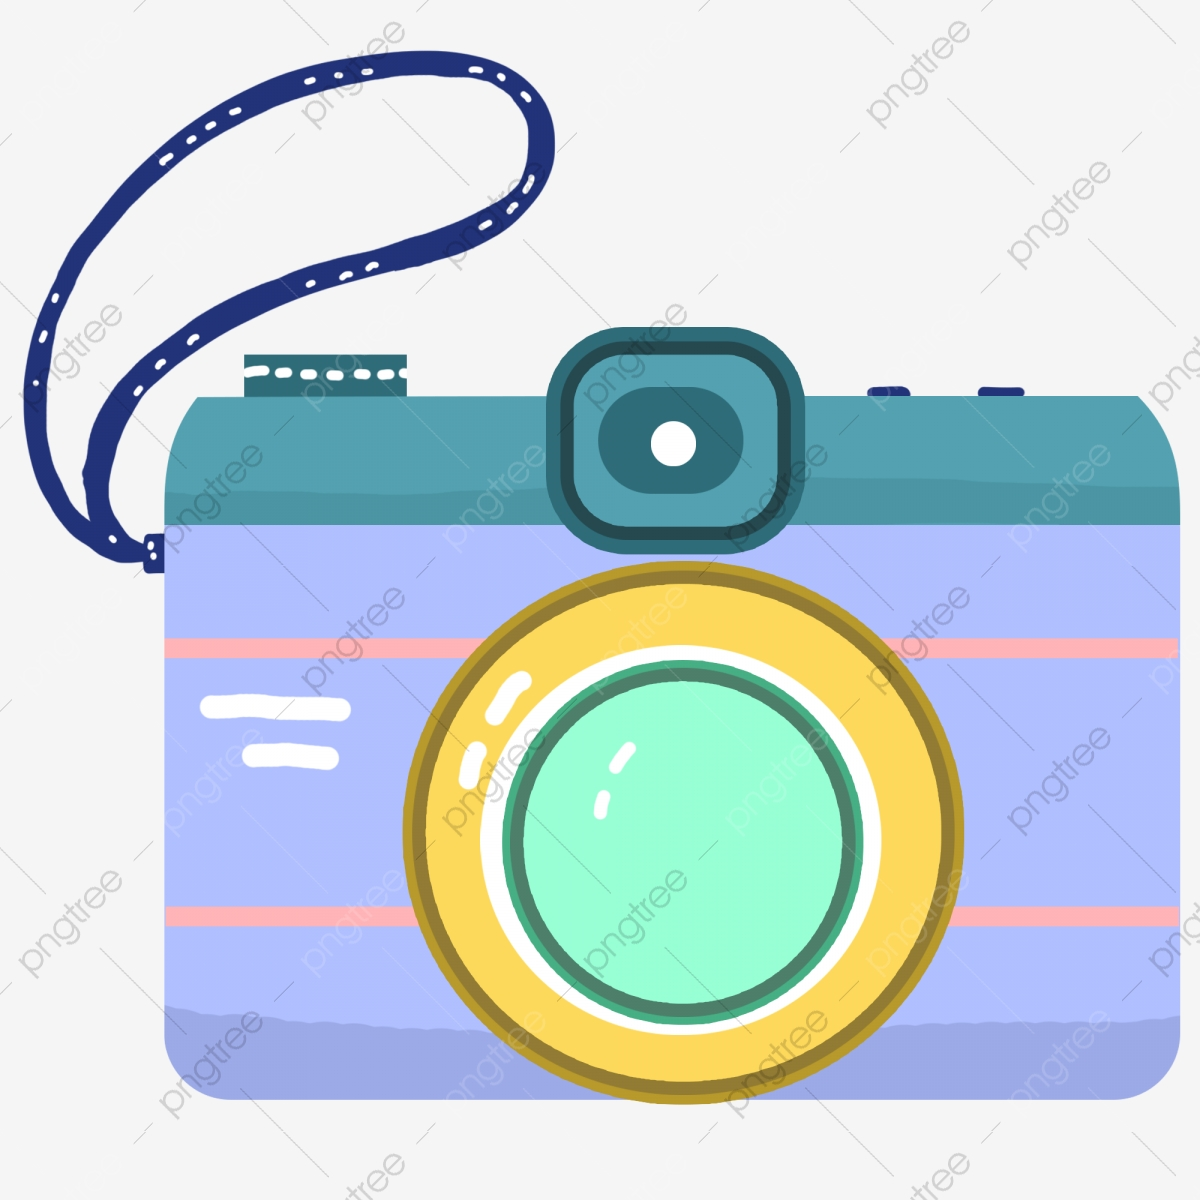 Purple Light Color Camera Illustration Purple Camera Light Fresh Camera Cartoon Camera Png Transparent Clipart Image And Psd File For Free Download